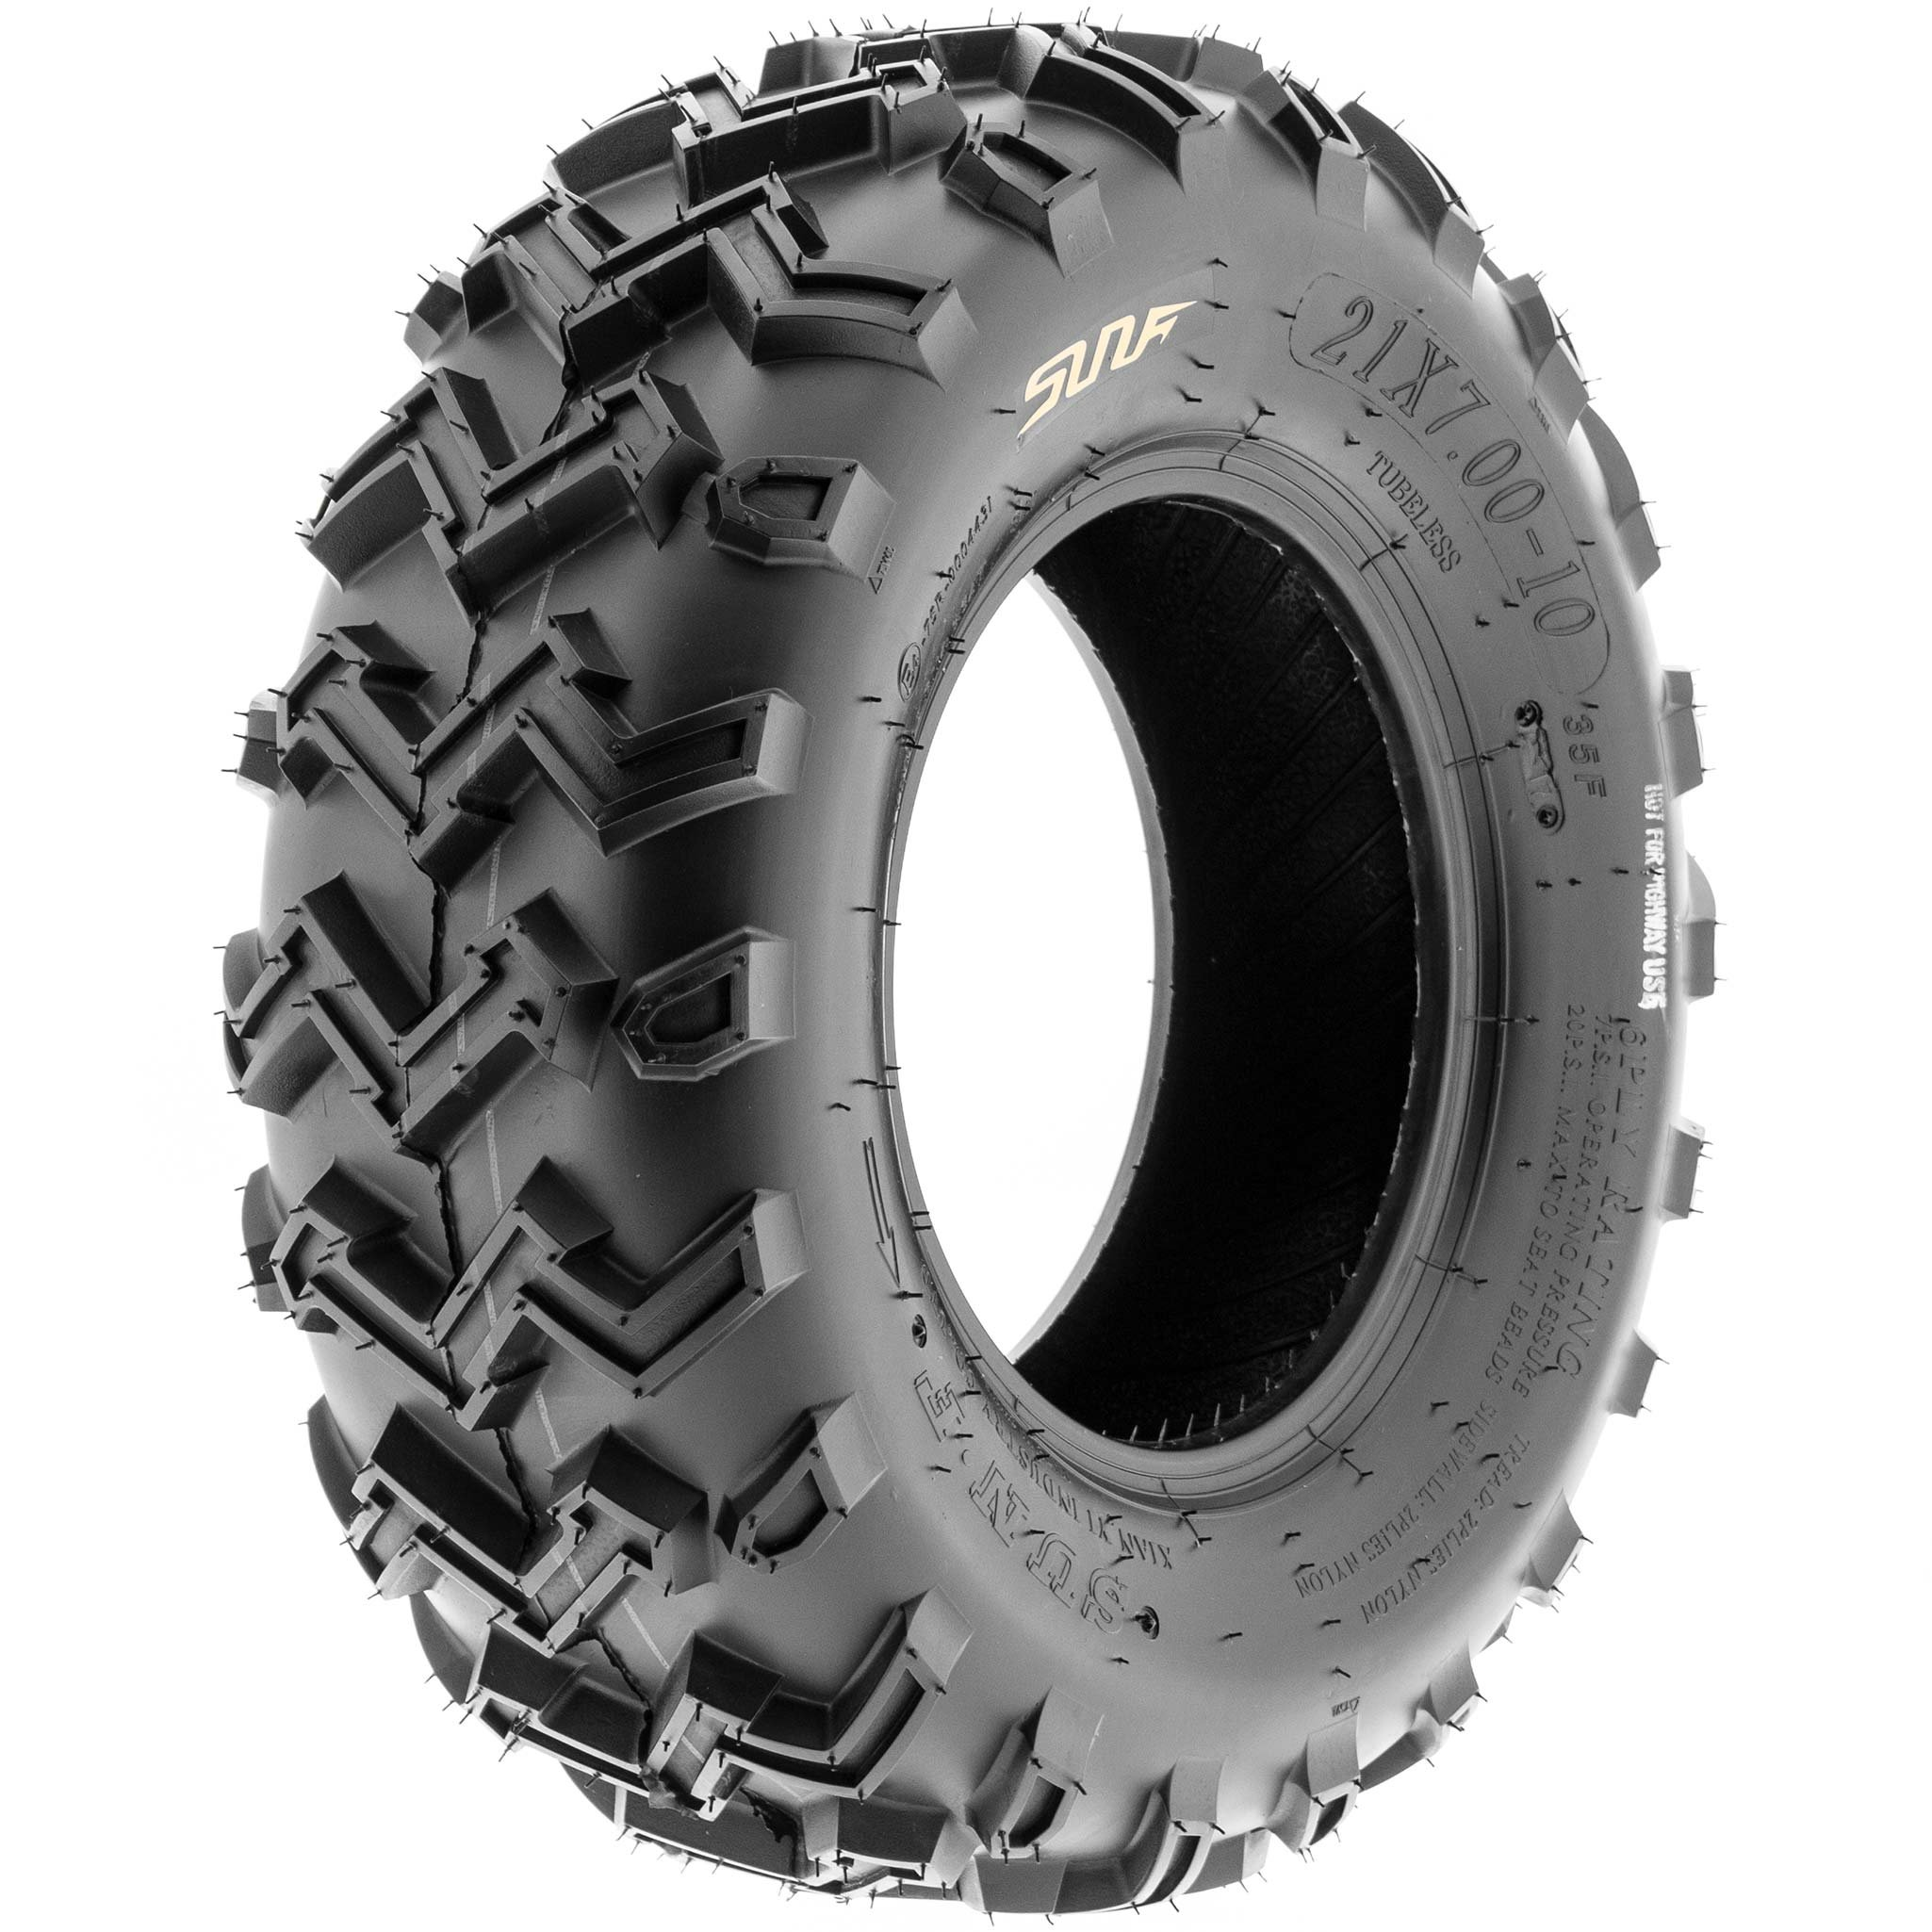 SunF 21x7-10 21x7x10 ATV UTV All Terrain Race Replacement 6 PR Tubeless Tires A001, [Set of 2] by SunF (Image #9)